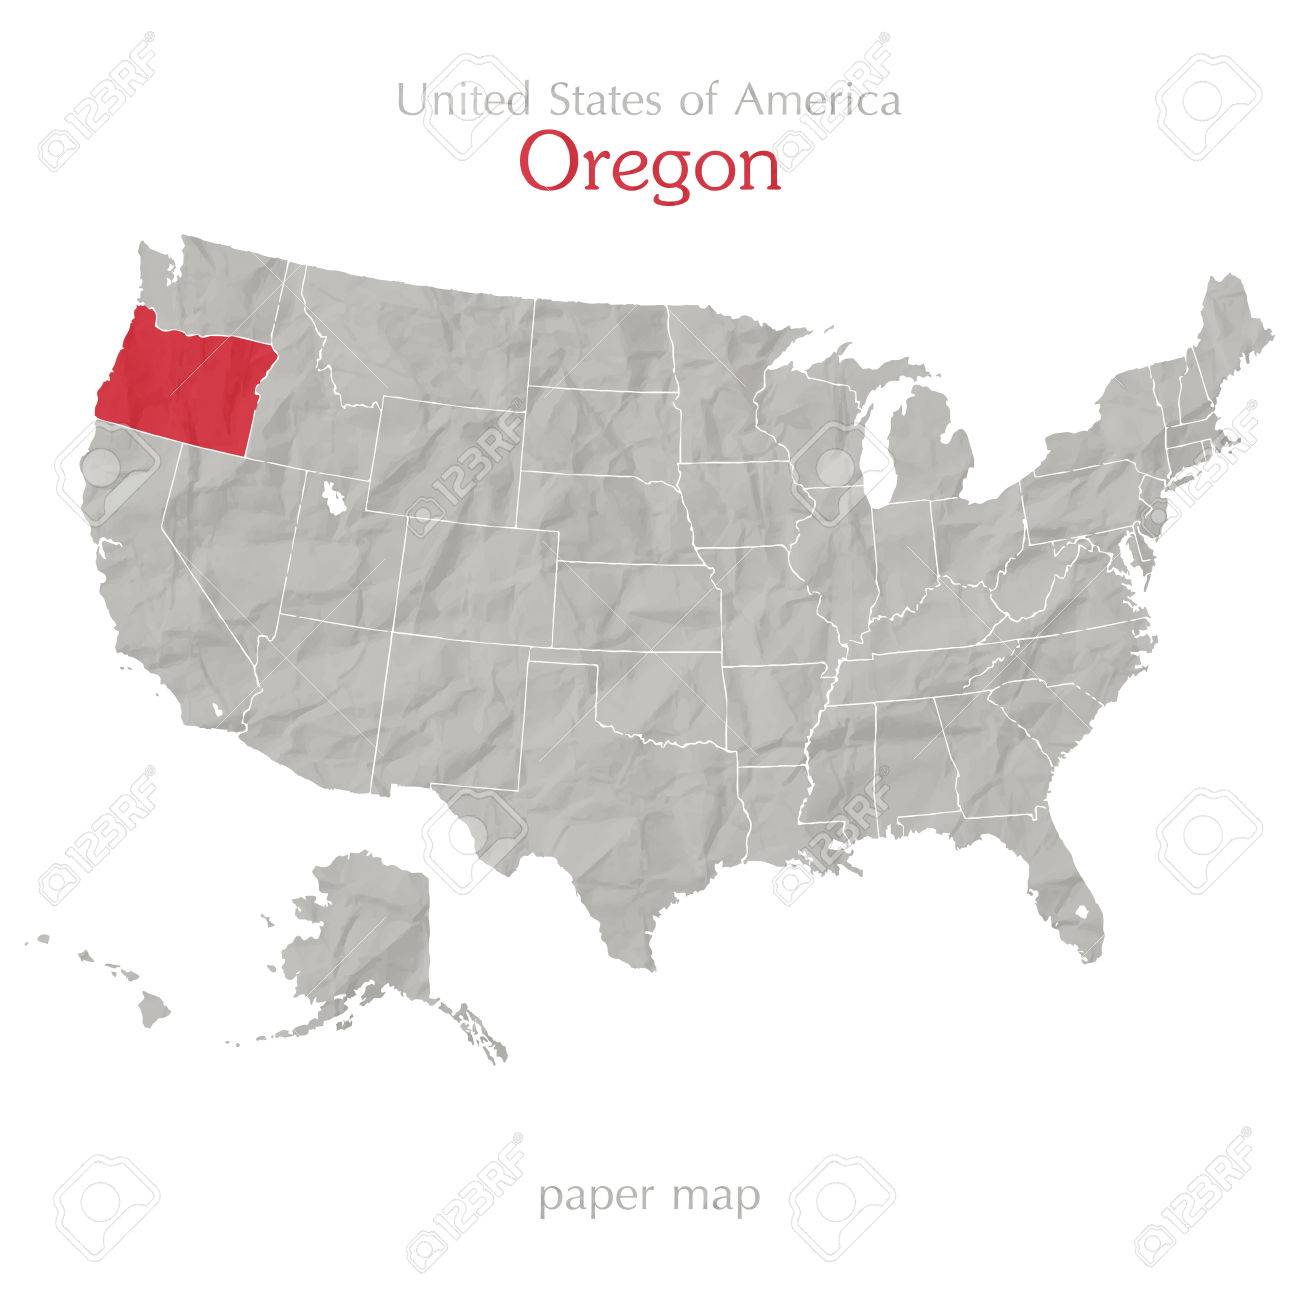 Map Usa Oregon Map Images Oregon State Maps USA Maps Of Oregon OR - Blank map of us territorial acquisitions